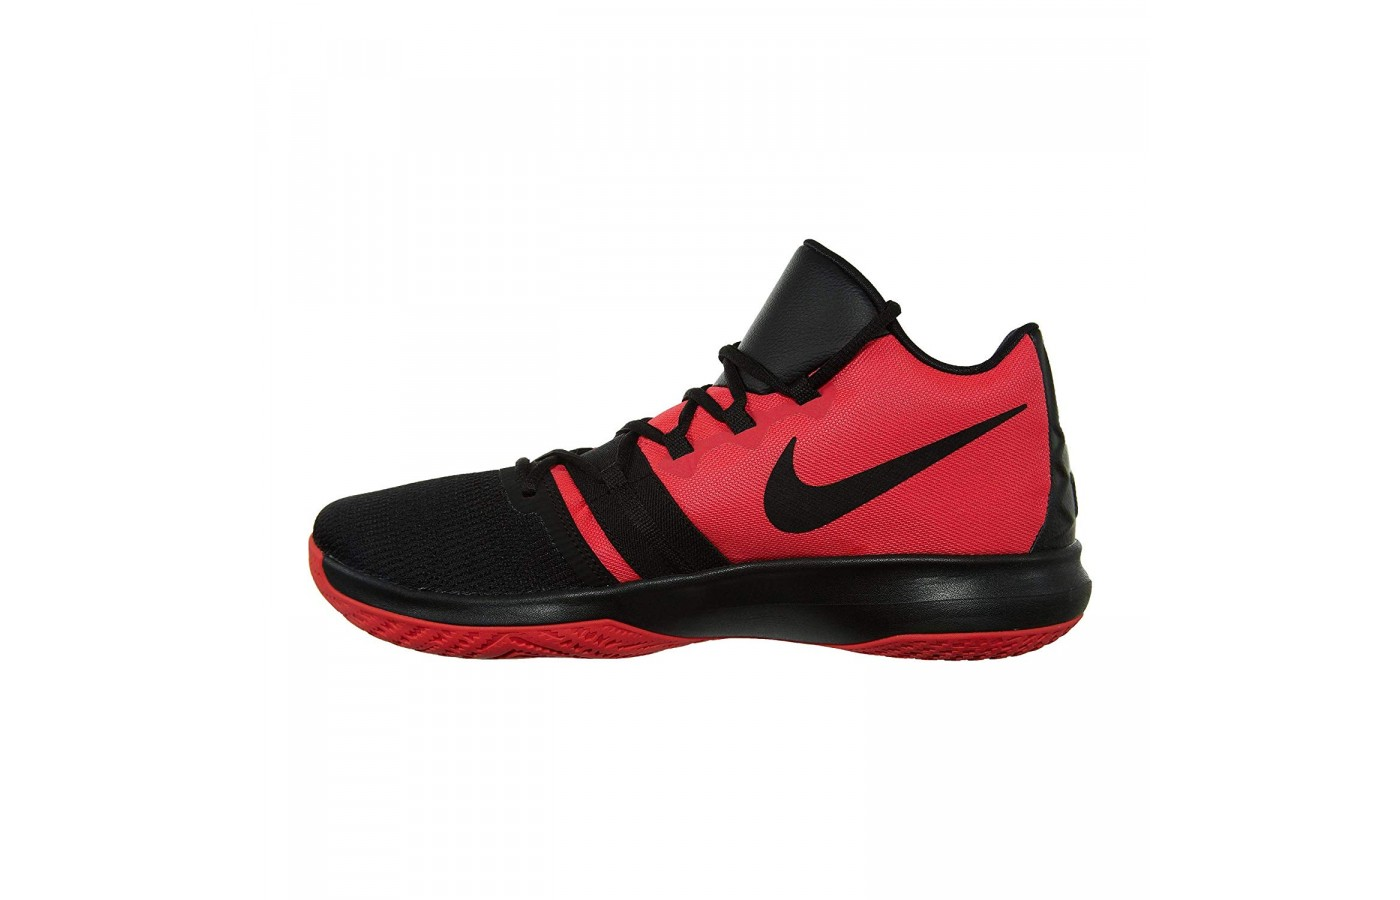 c2ab7931f670 Nike Kyrie Flytrap Outsole  Nike Kyrie Flytrap Insole ...